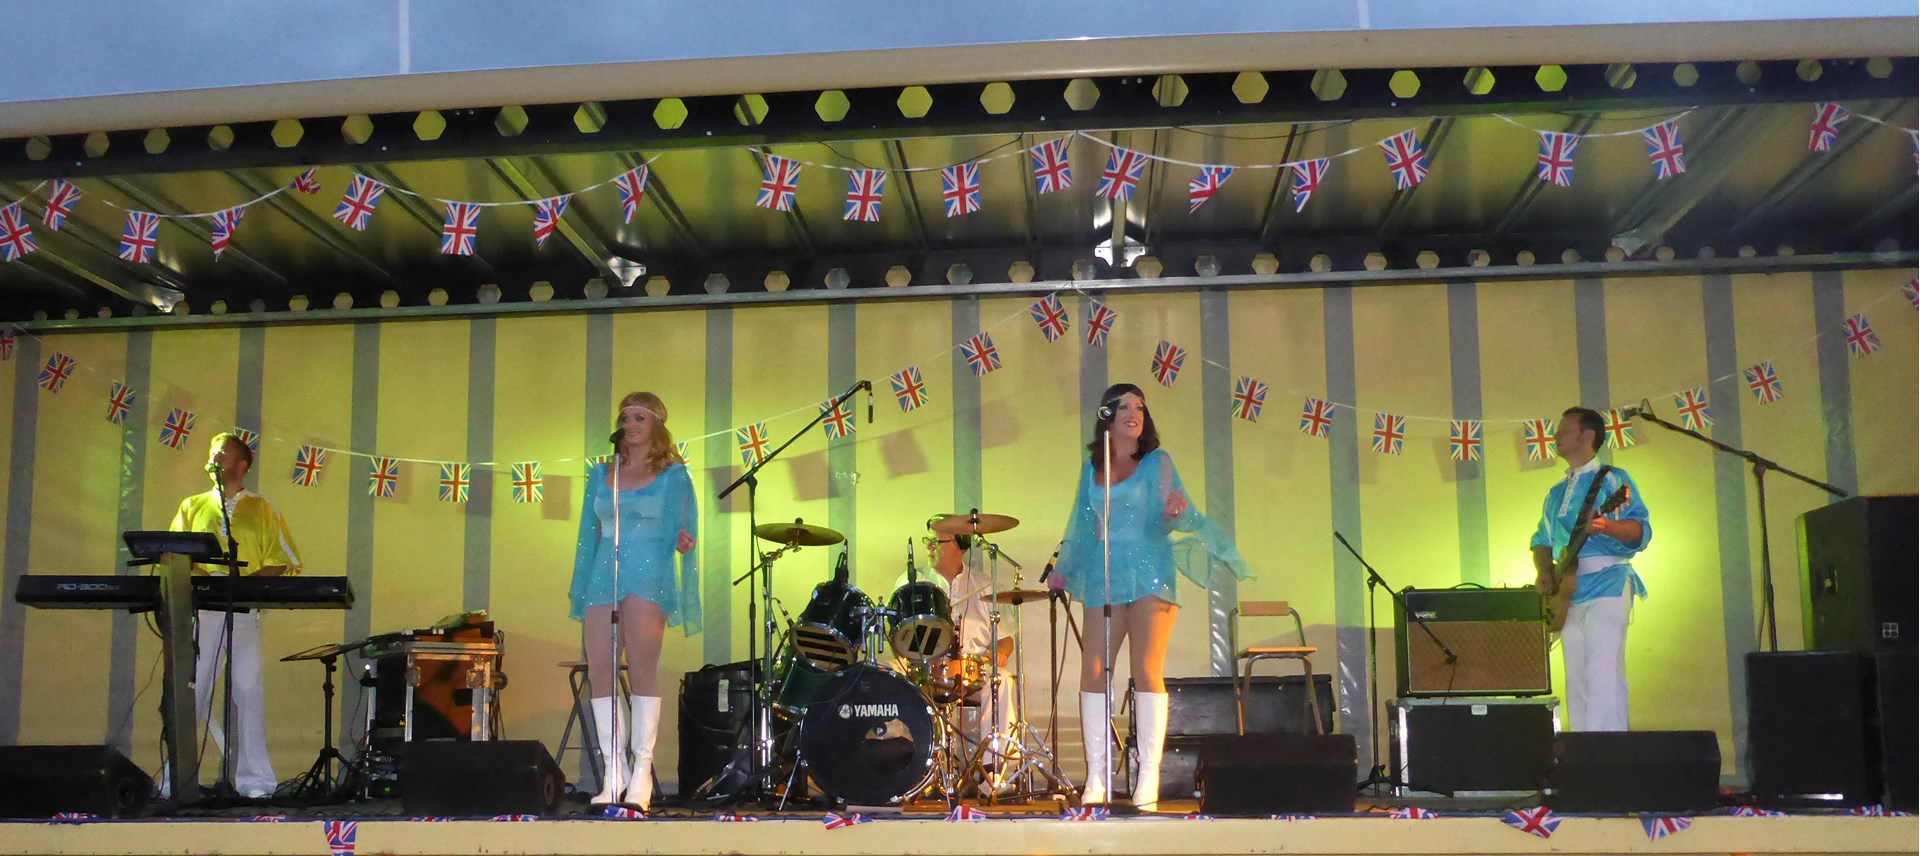 Bourton-on-the-Water Parish Council Abba Concert